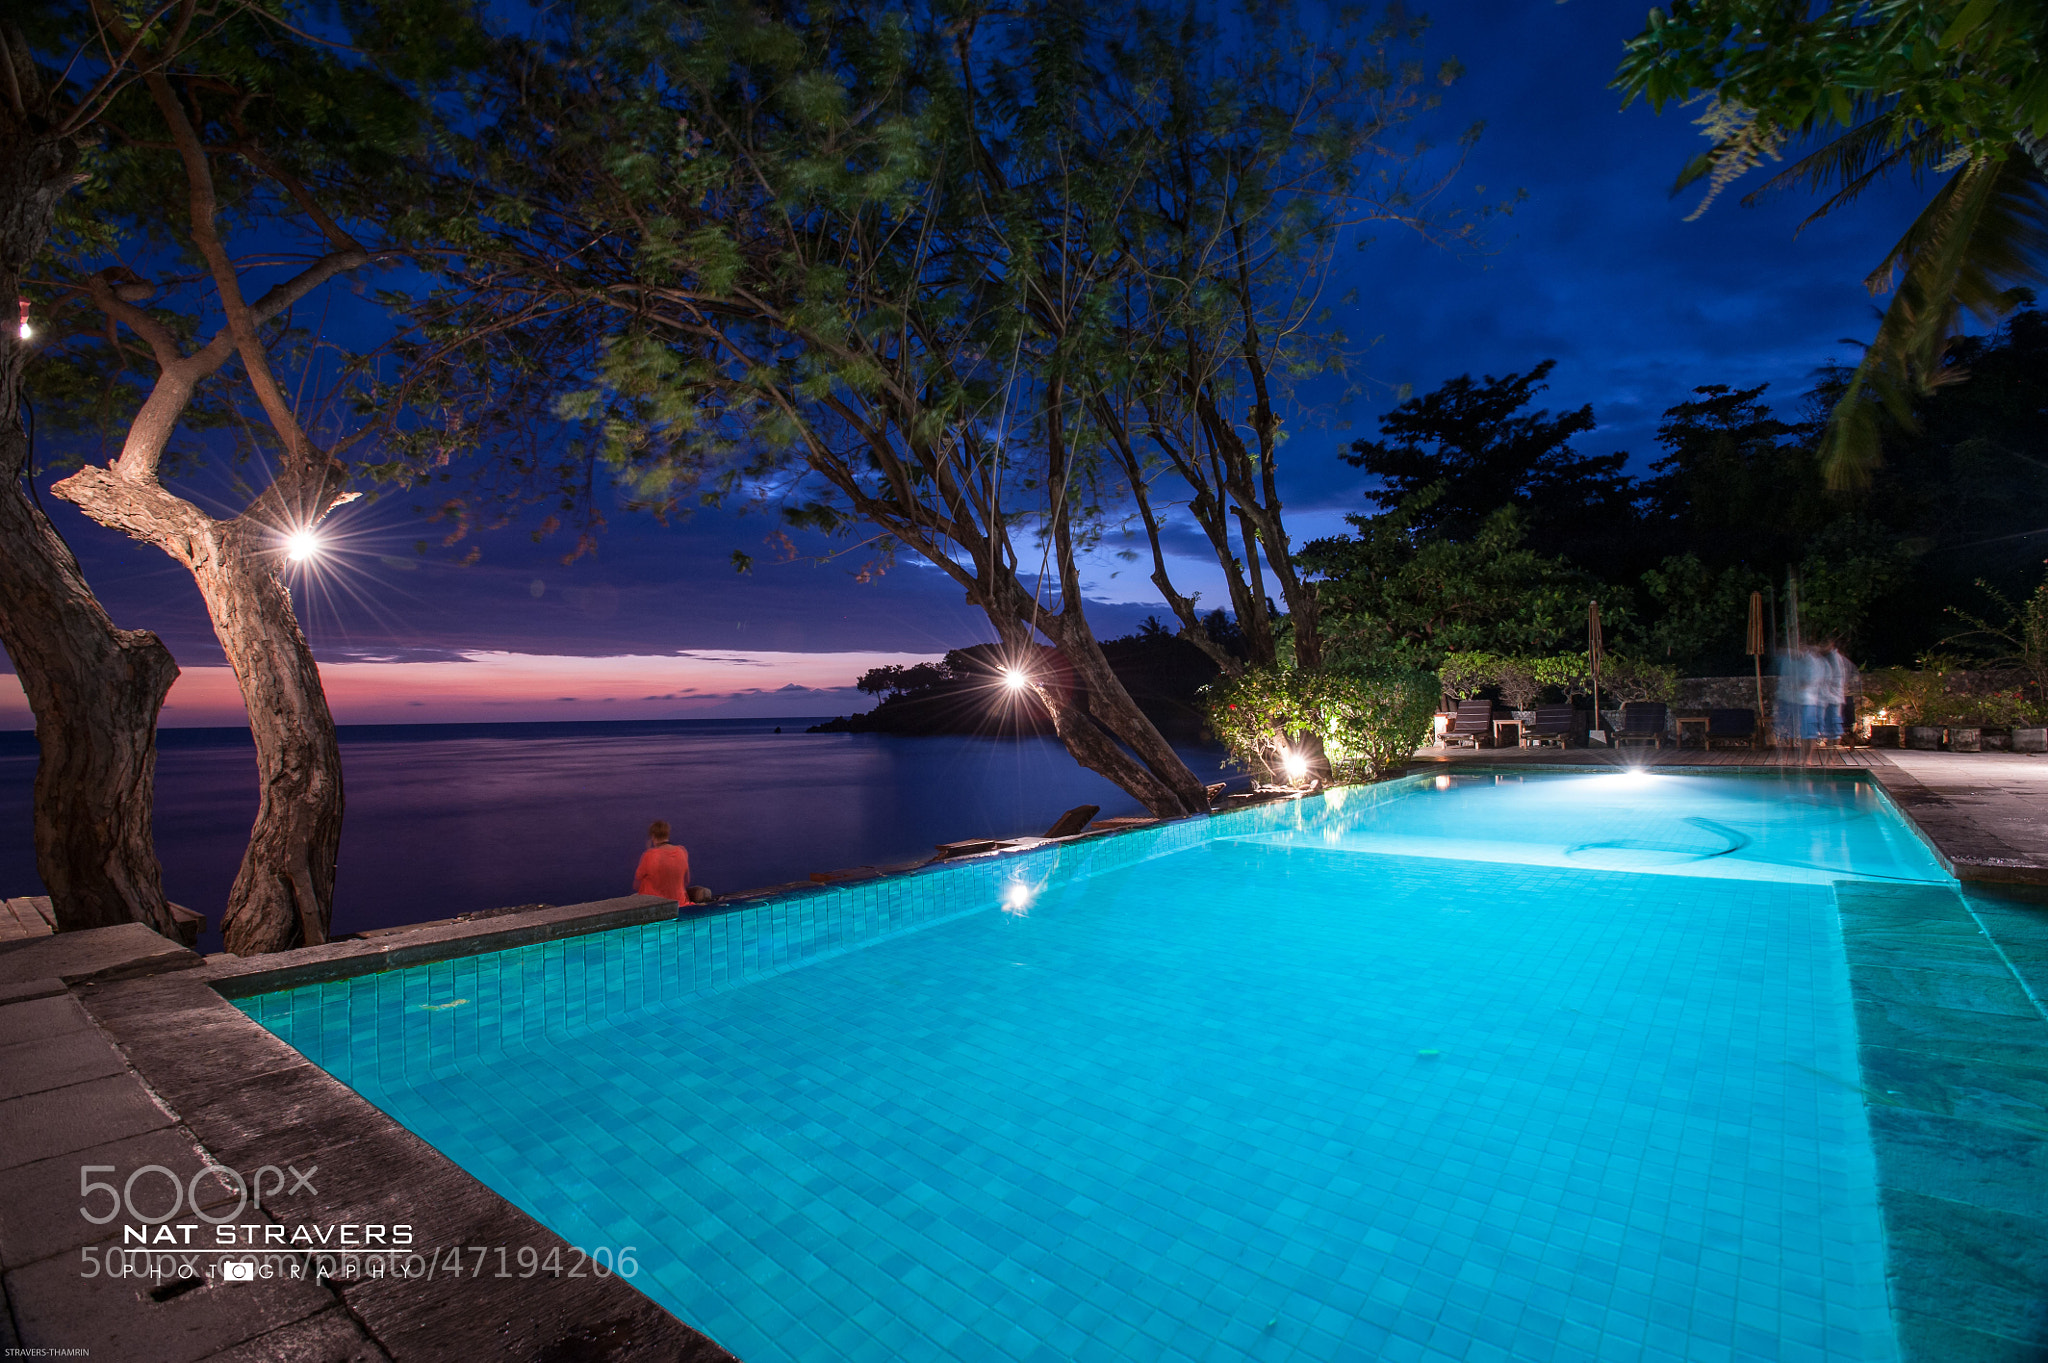 Photograph Mimpi Resort Tulamben by Nathalie Stravers on 500px